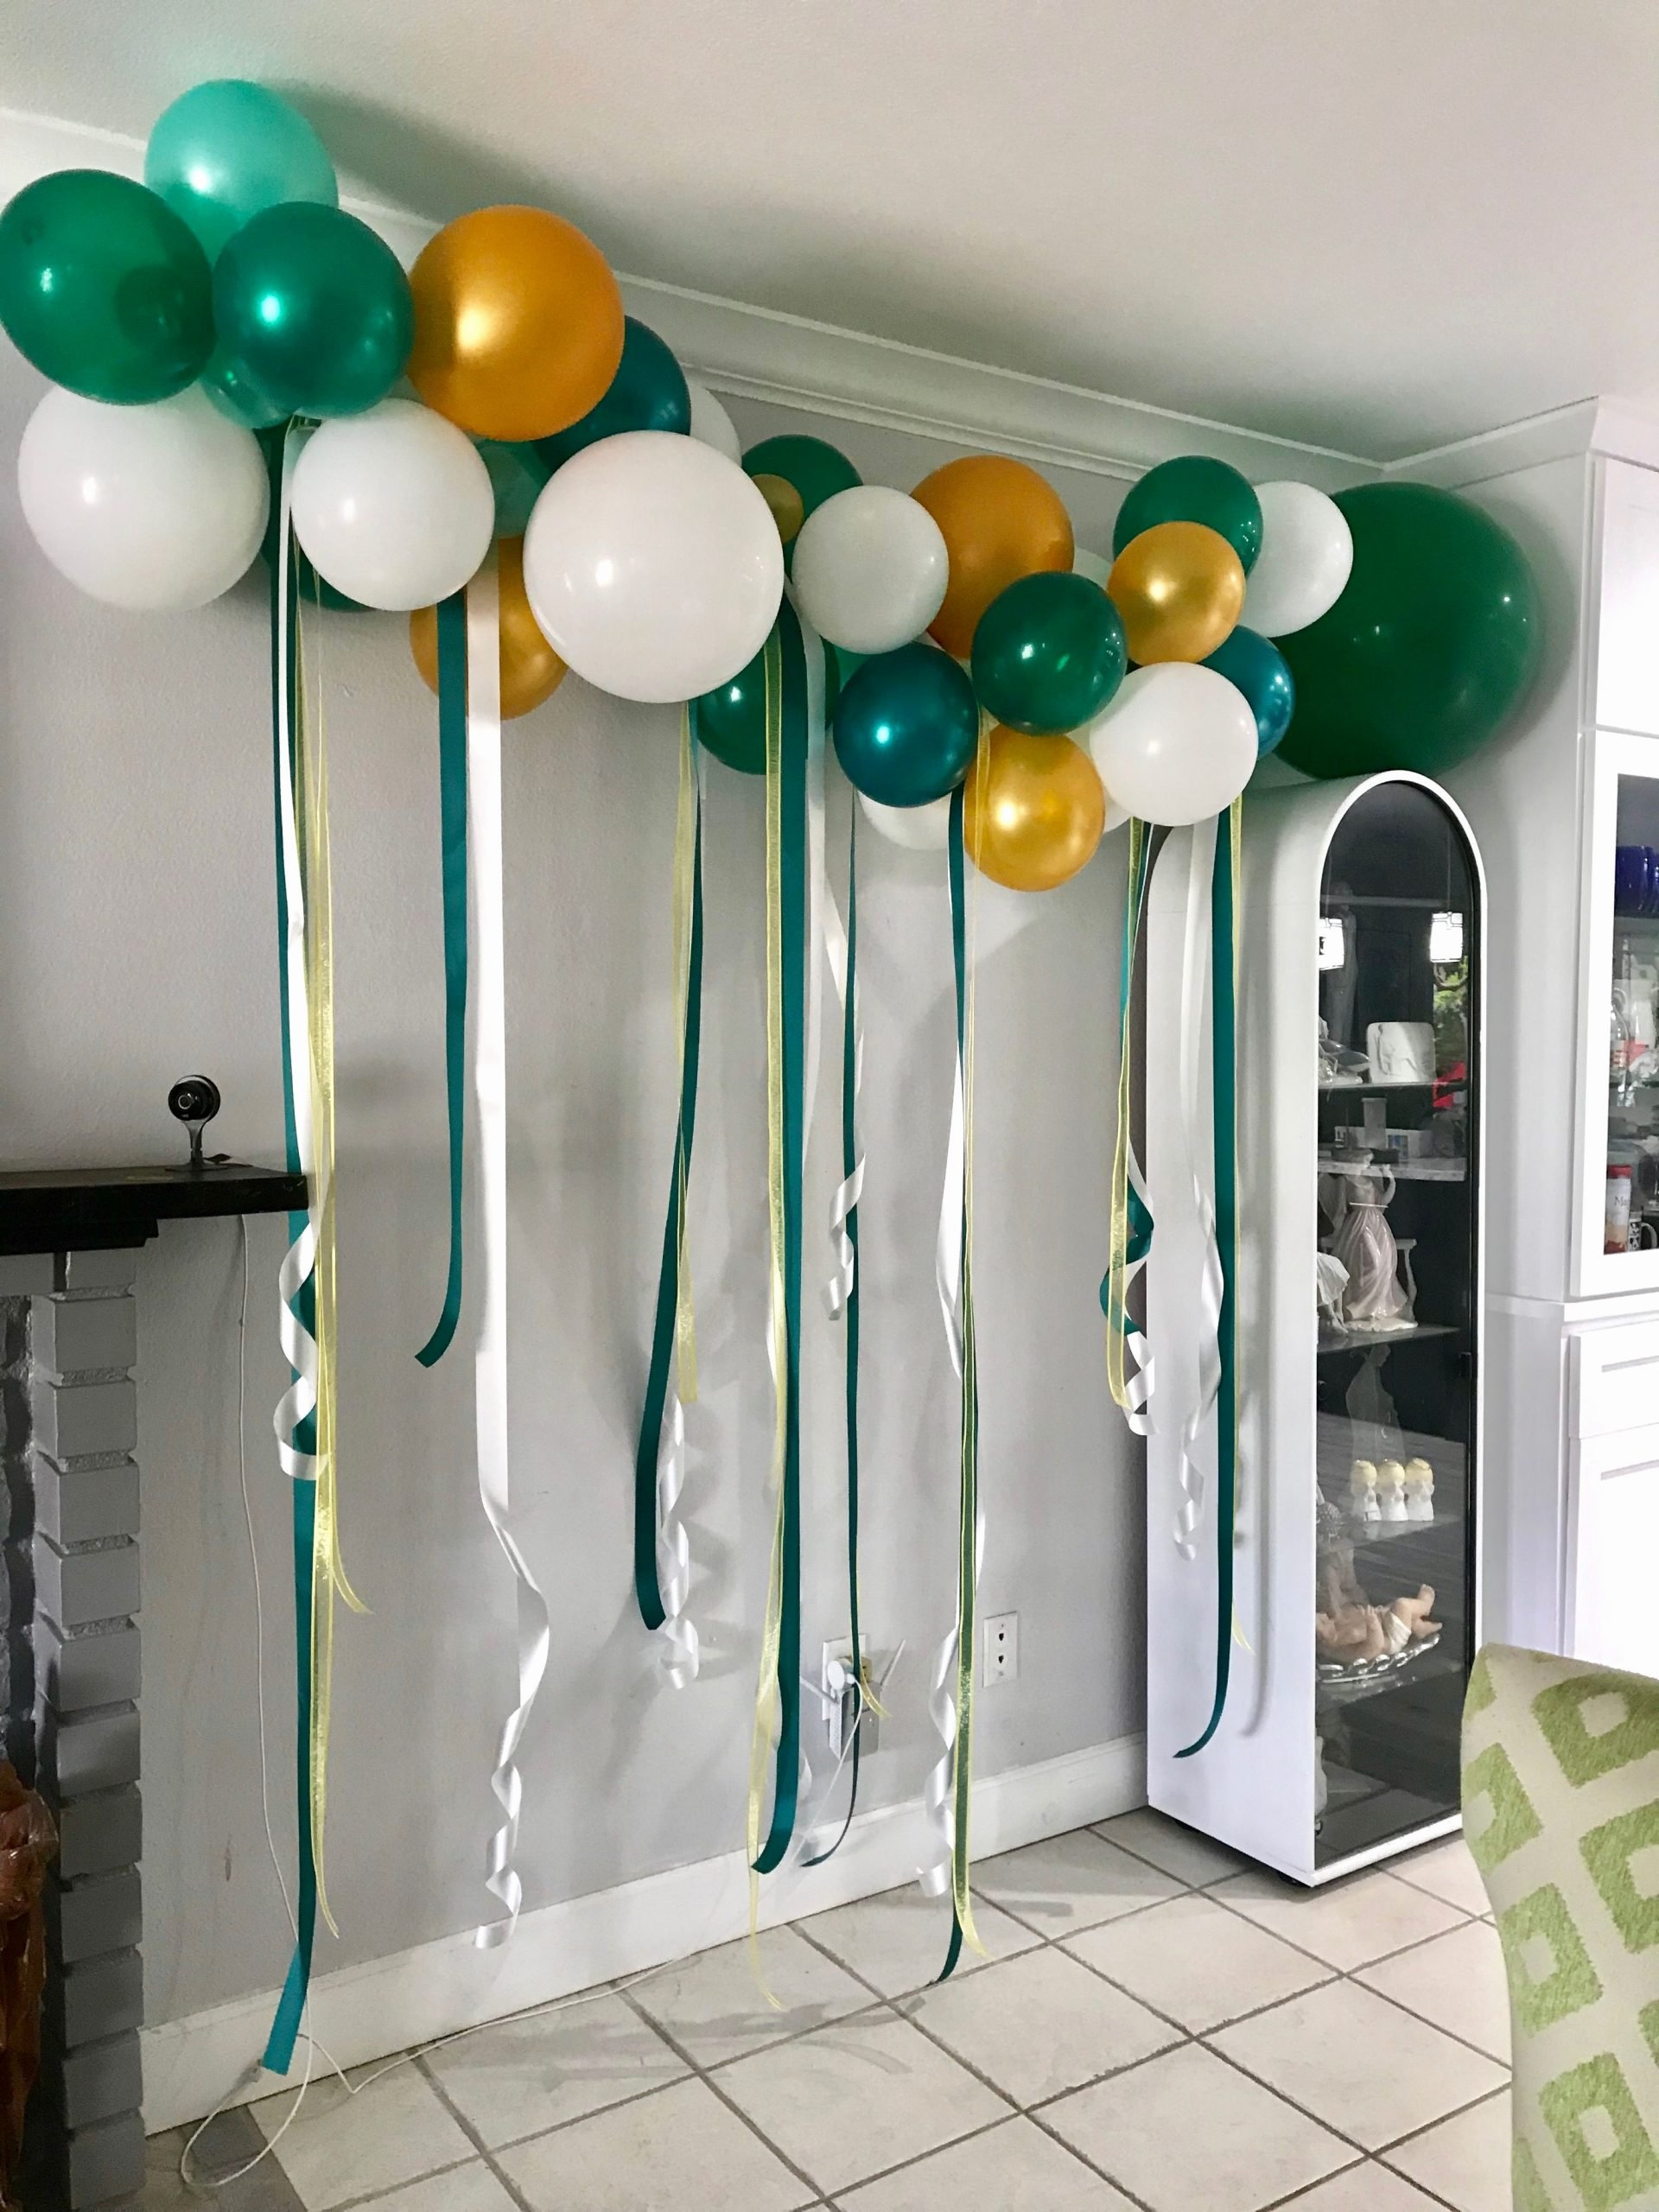 Green and Gold Birthday Decoration Ideas Awesome 60th Birthday Balloon Garland by La Jolie Fªte